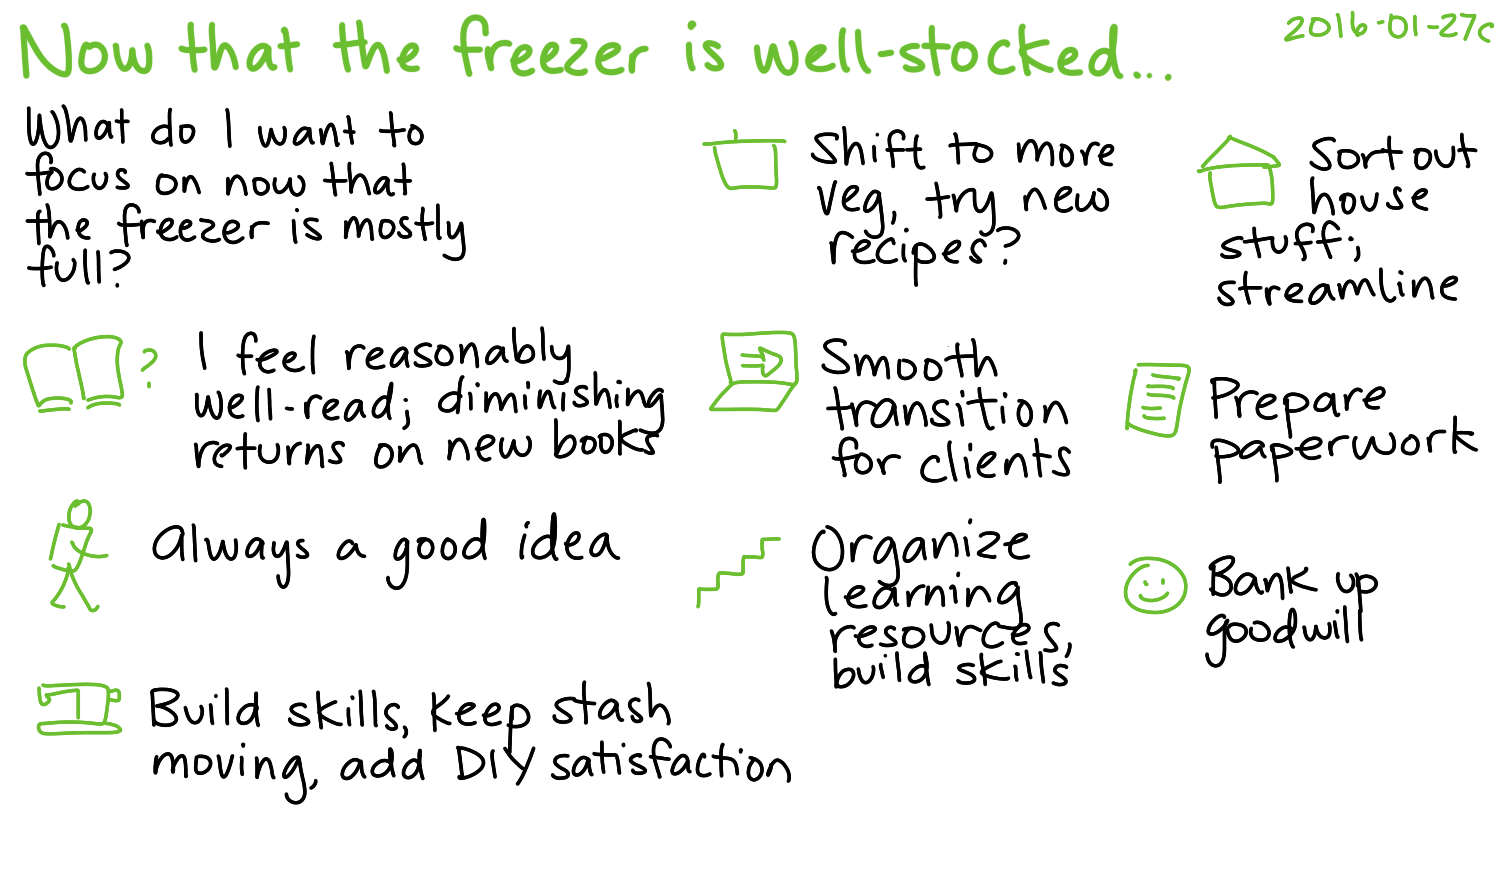 2016-01-27c Now that the freezer is well stocked -- index card #preparation #activities.png